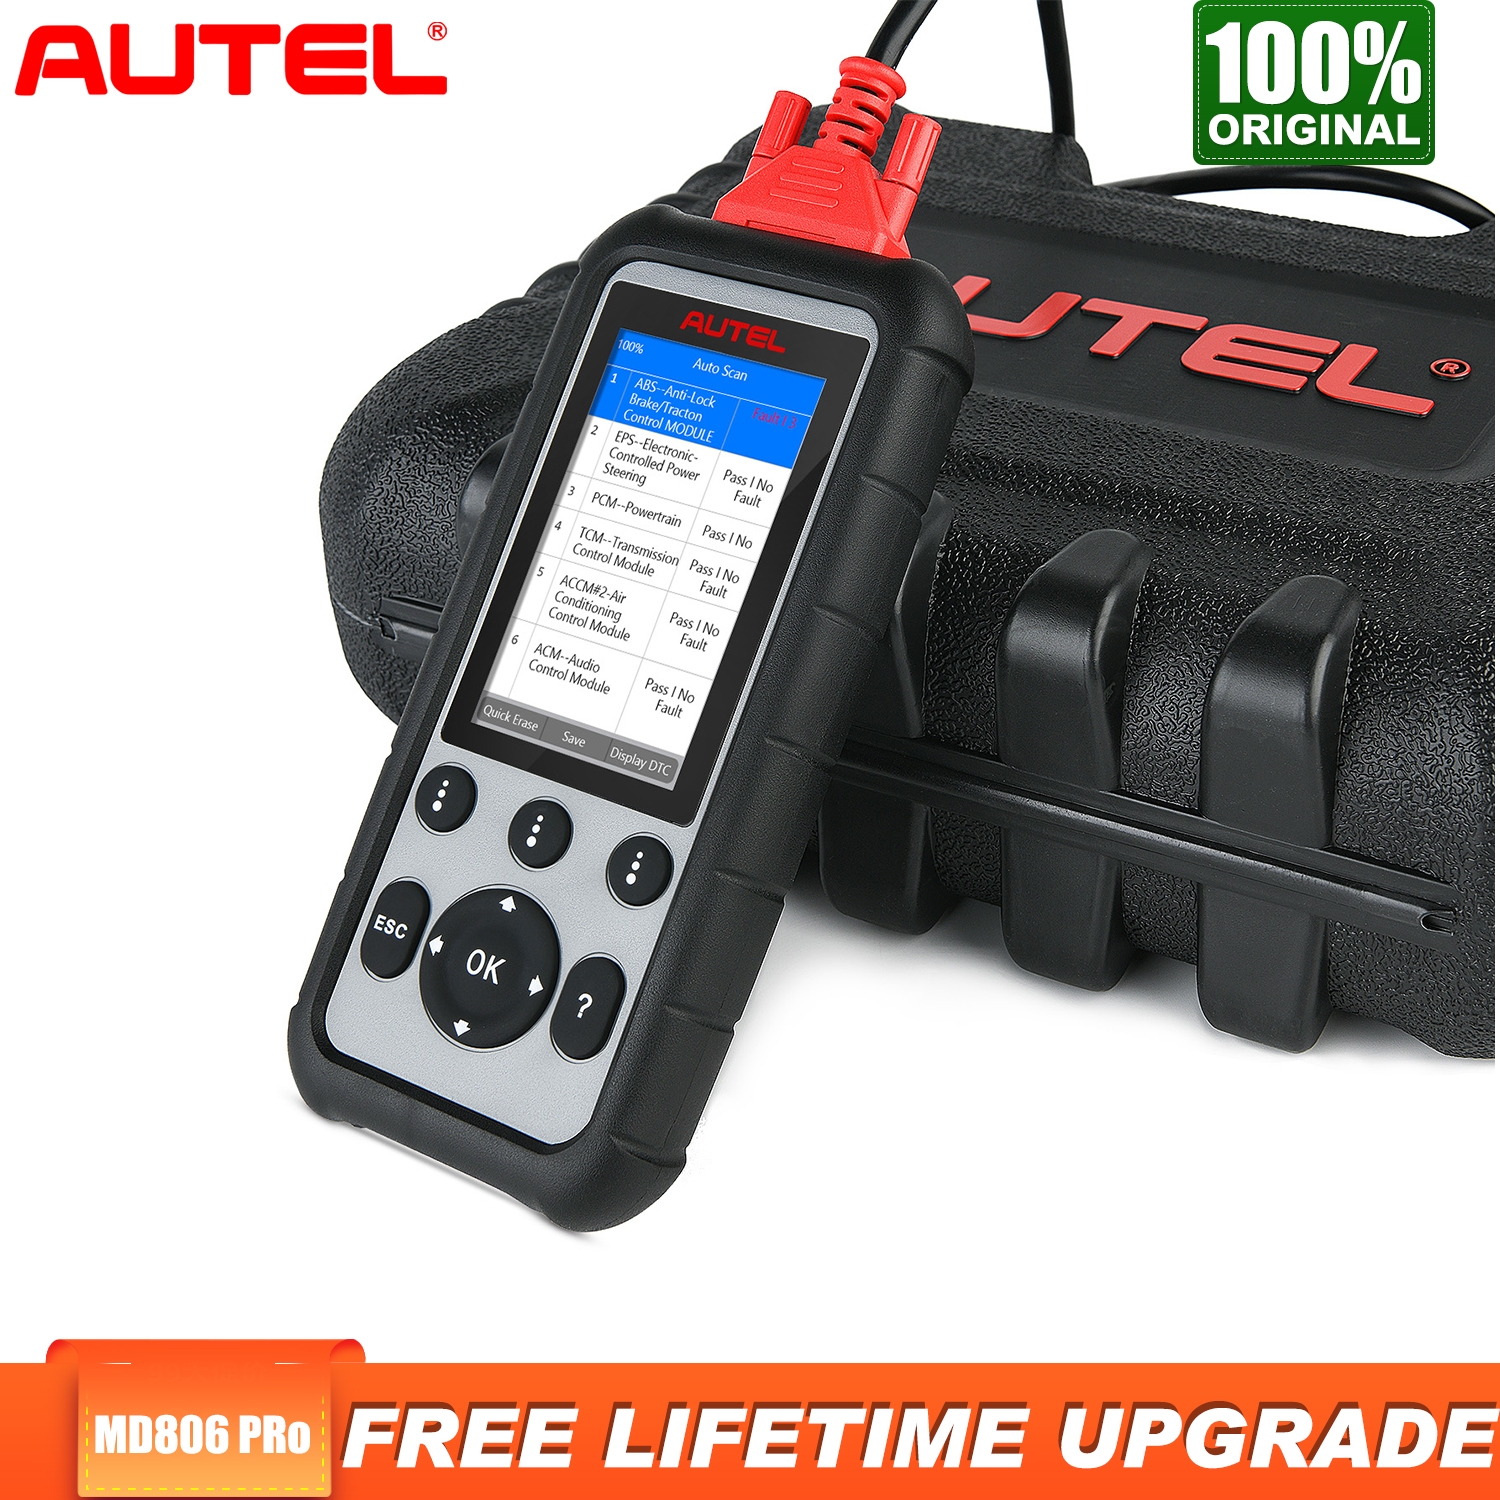 Autel MD806 Pro Obd2 Scanner Diagnostic Tool Car Diagnostic Full System Diagnoses EPB/Oil Reset/BMS DPF Batter Than MD805 MD802 image